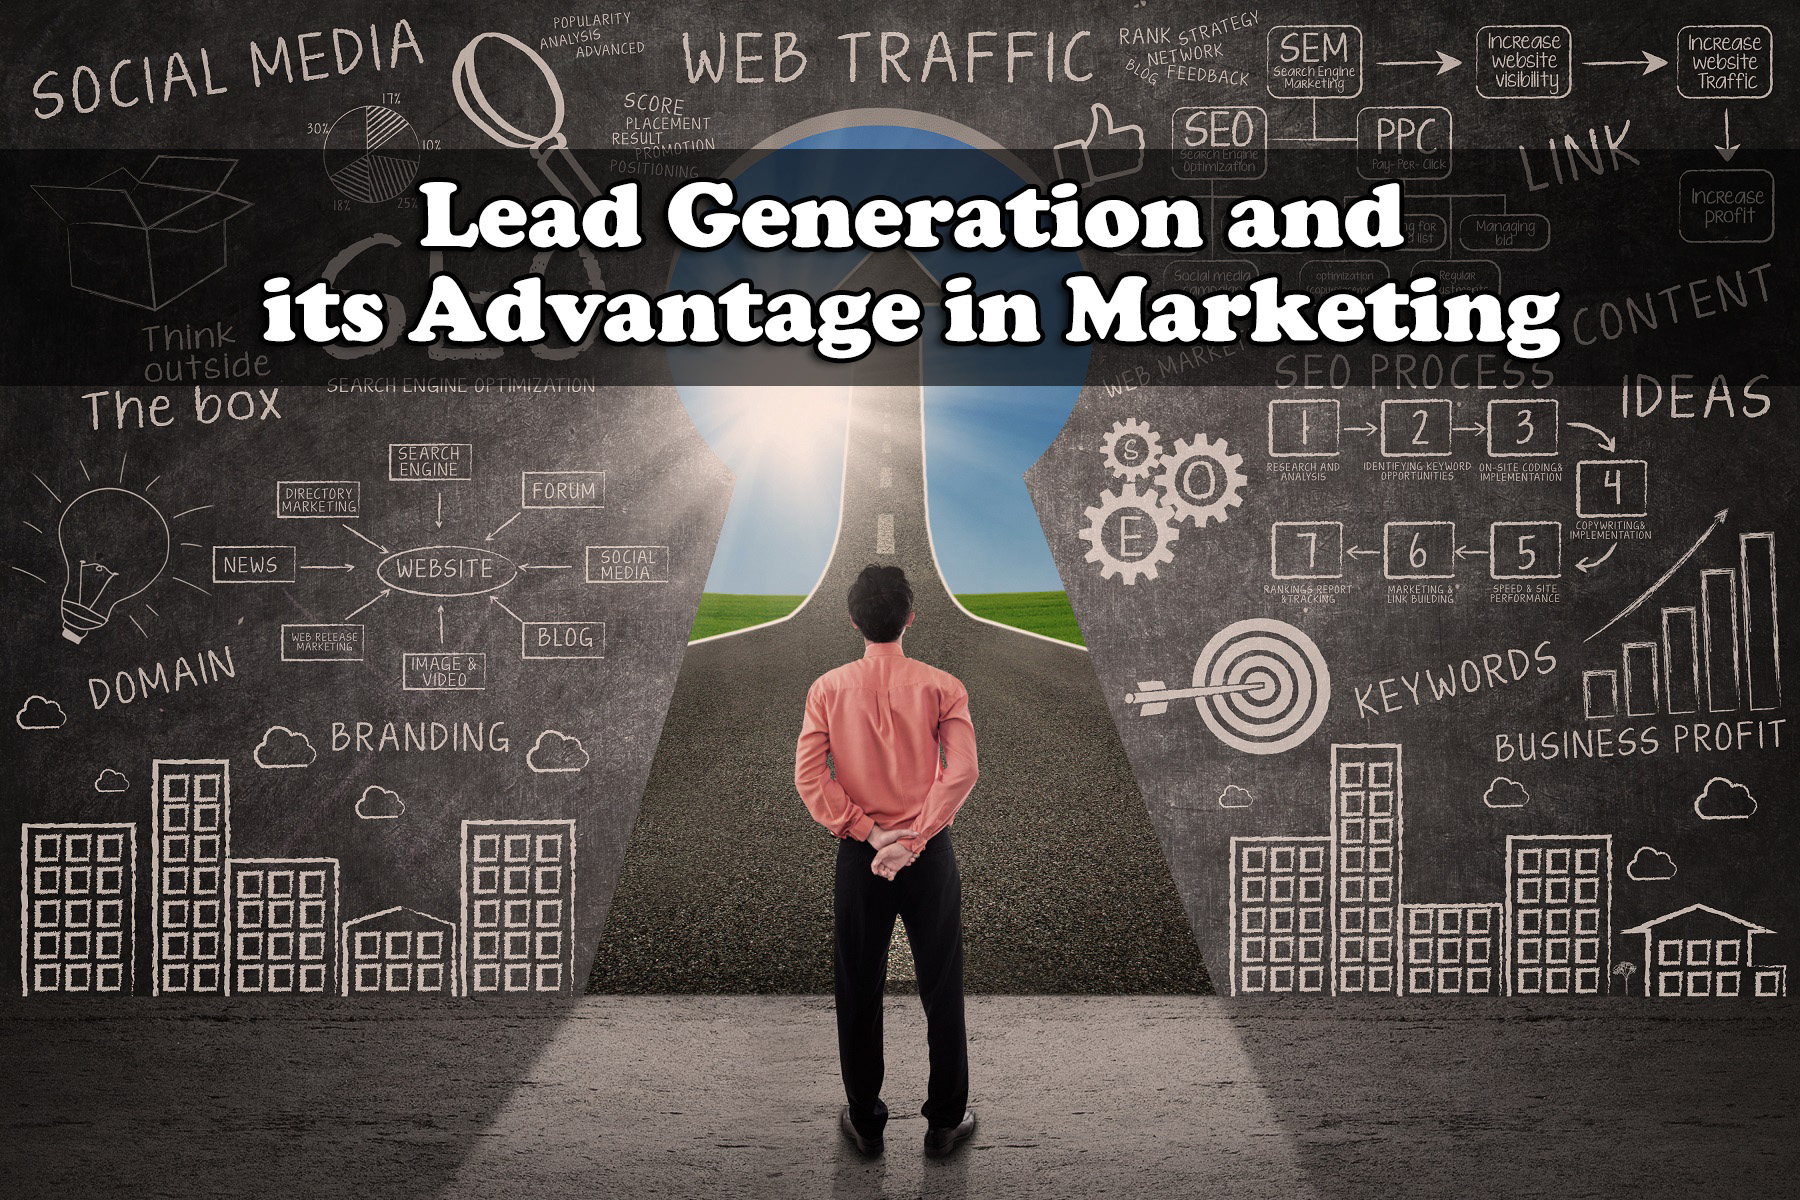 Lead Generation and its Advantage in Marketing